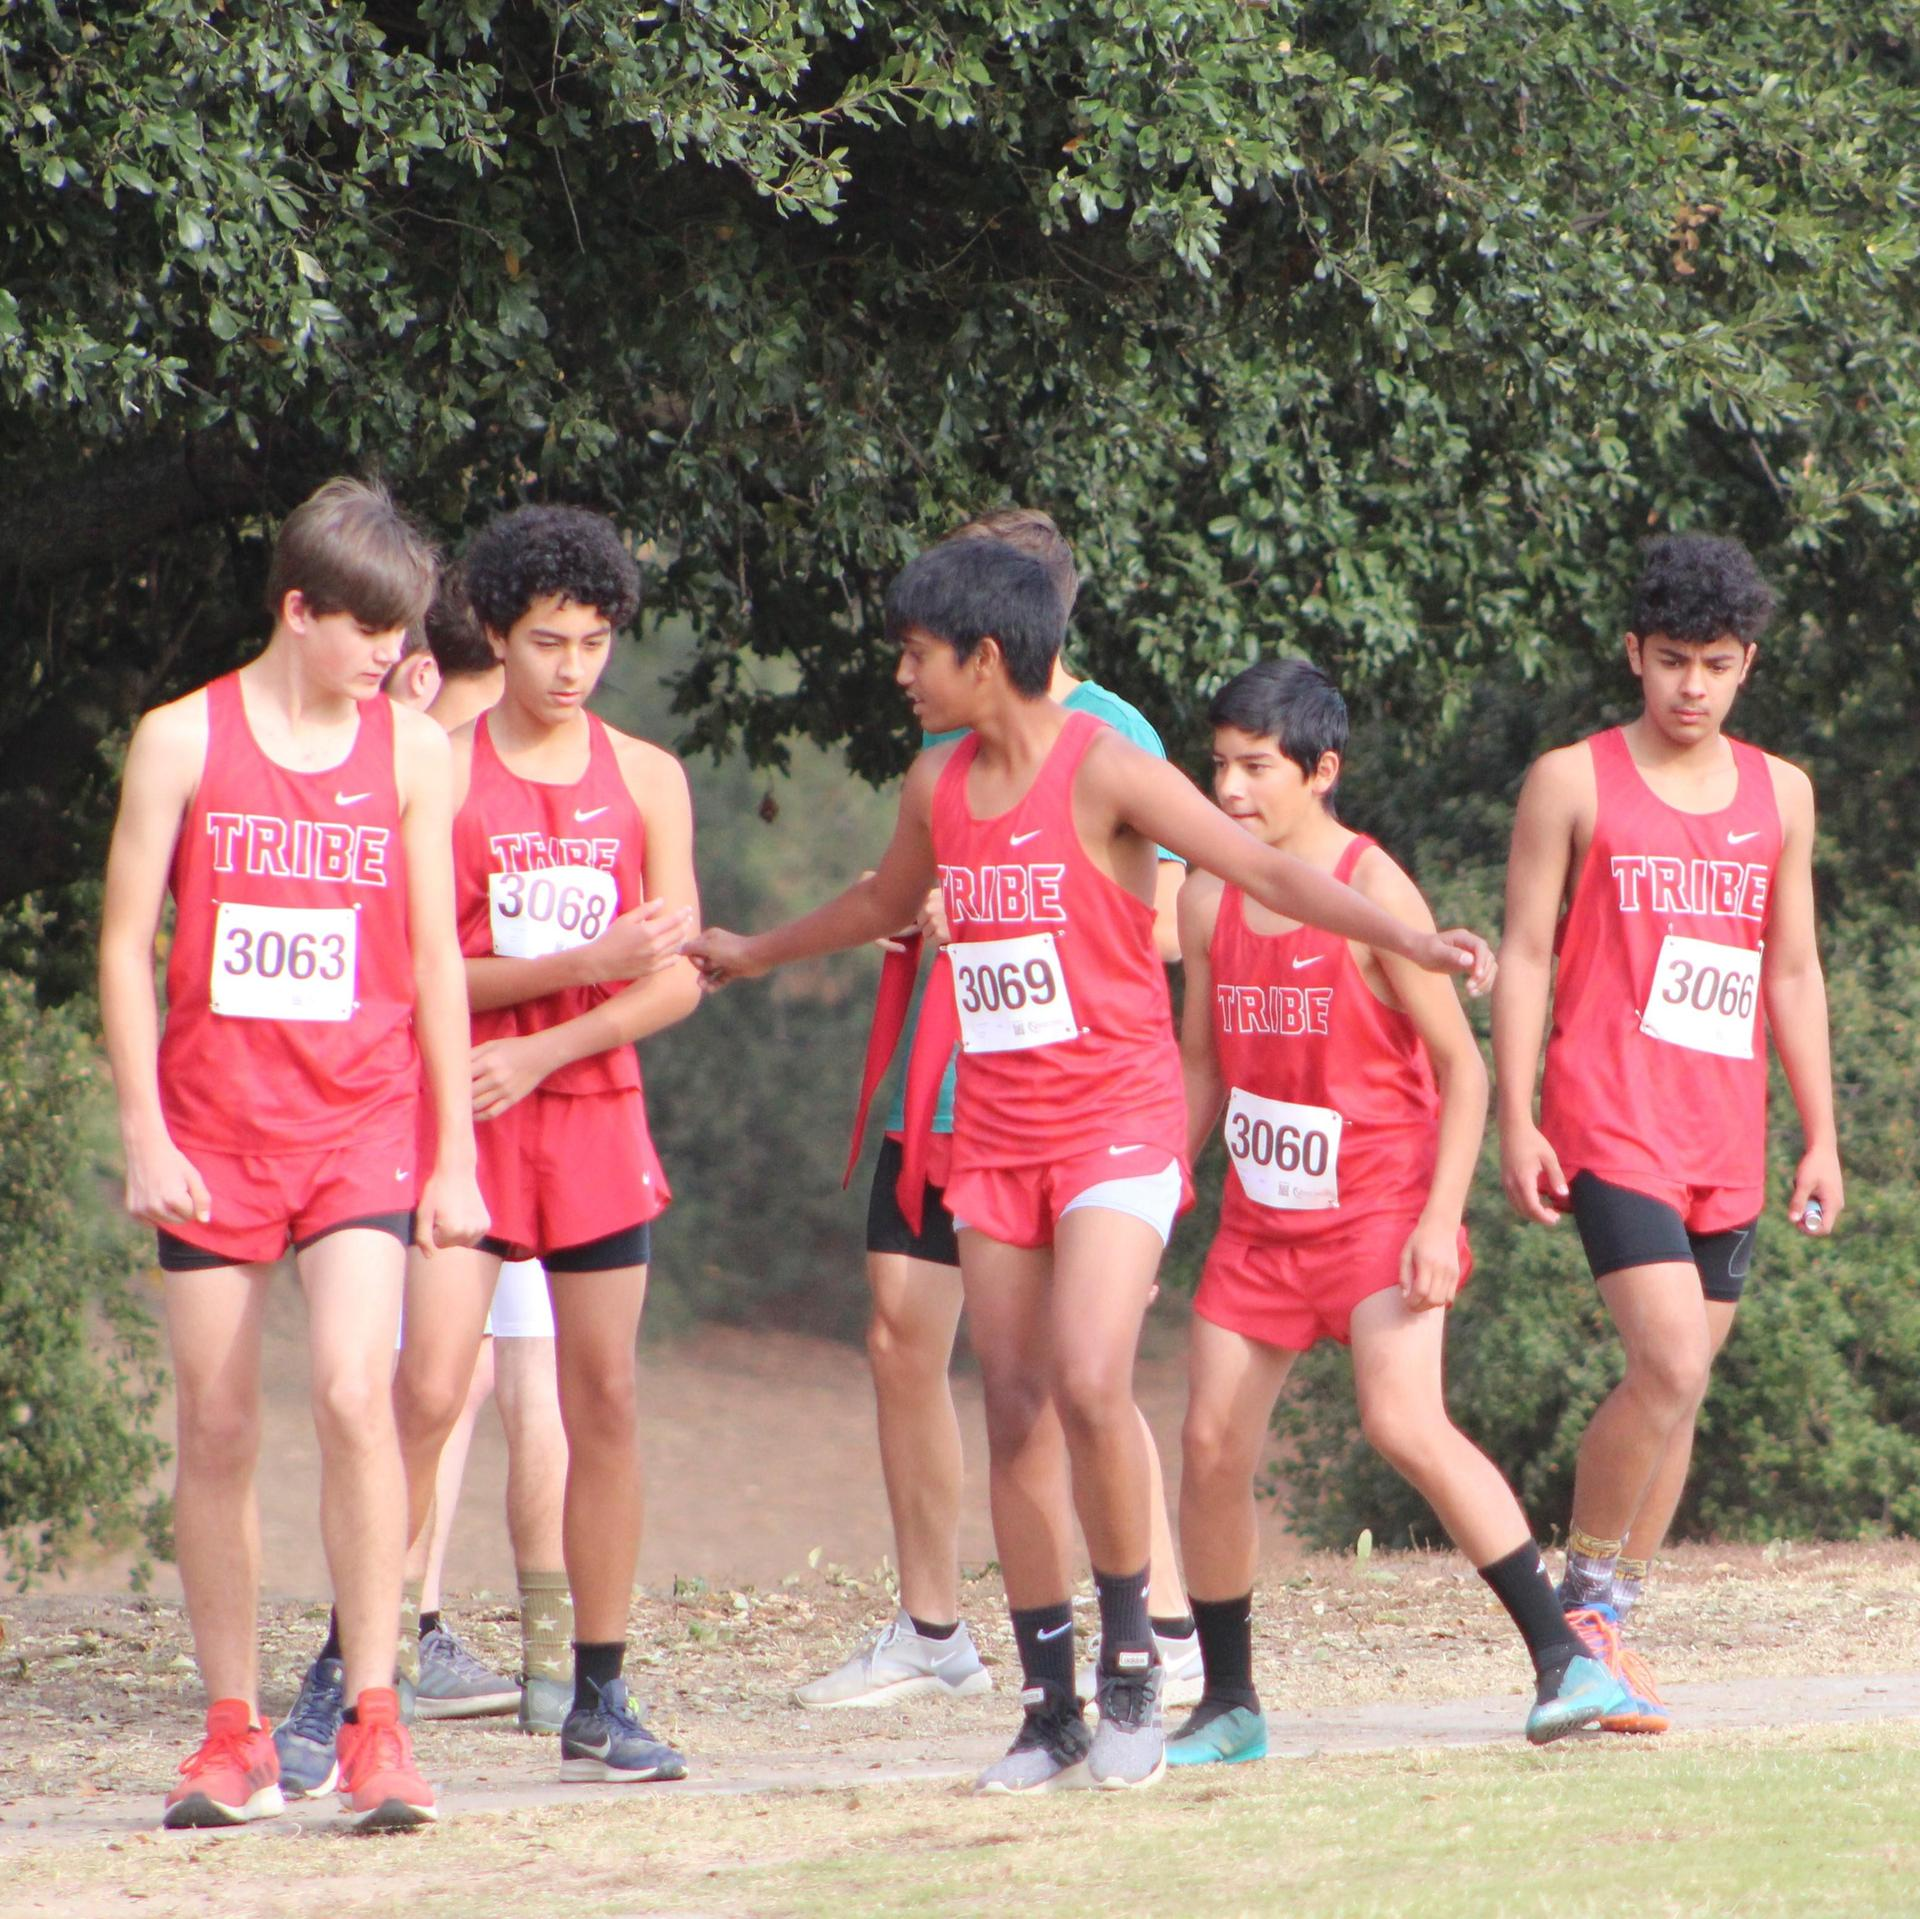 Boys warming up for race